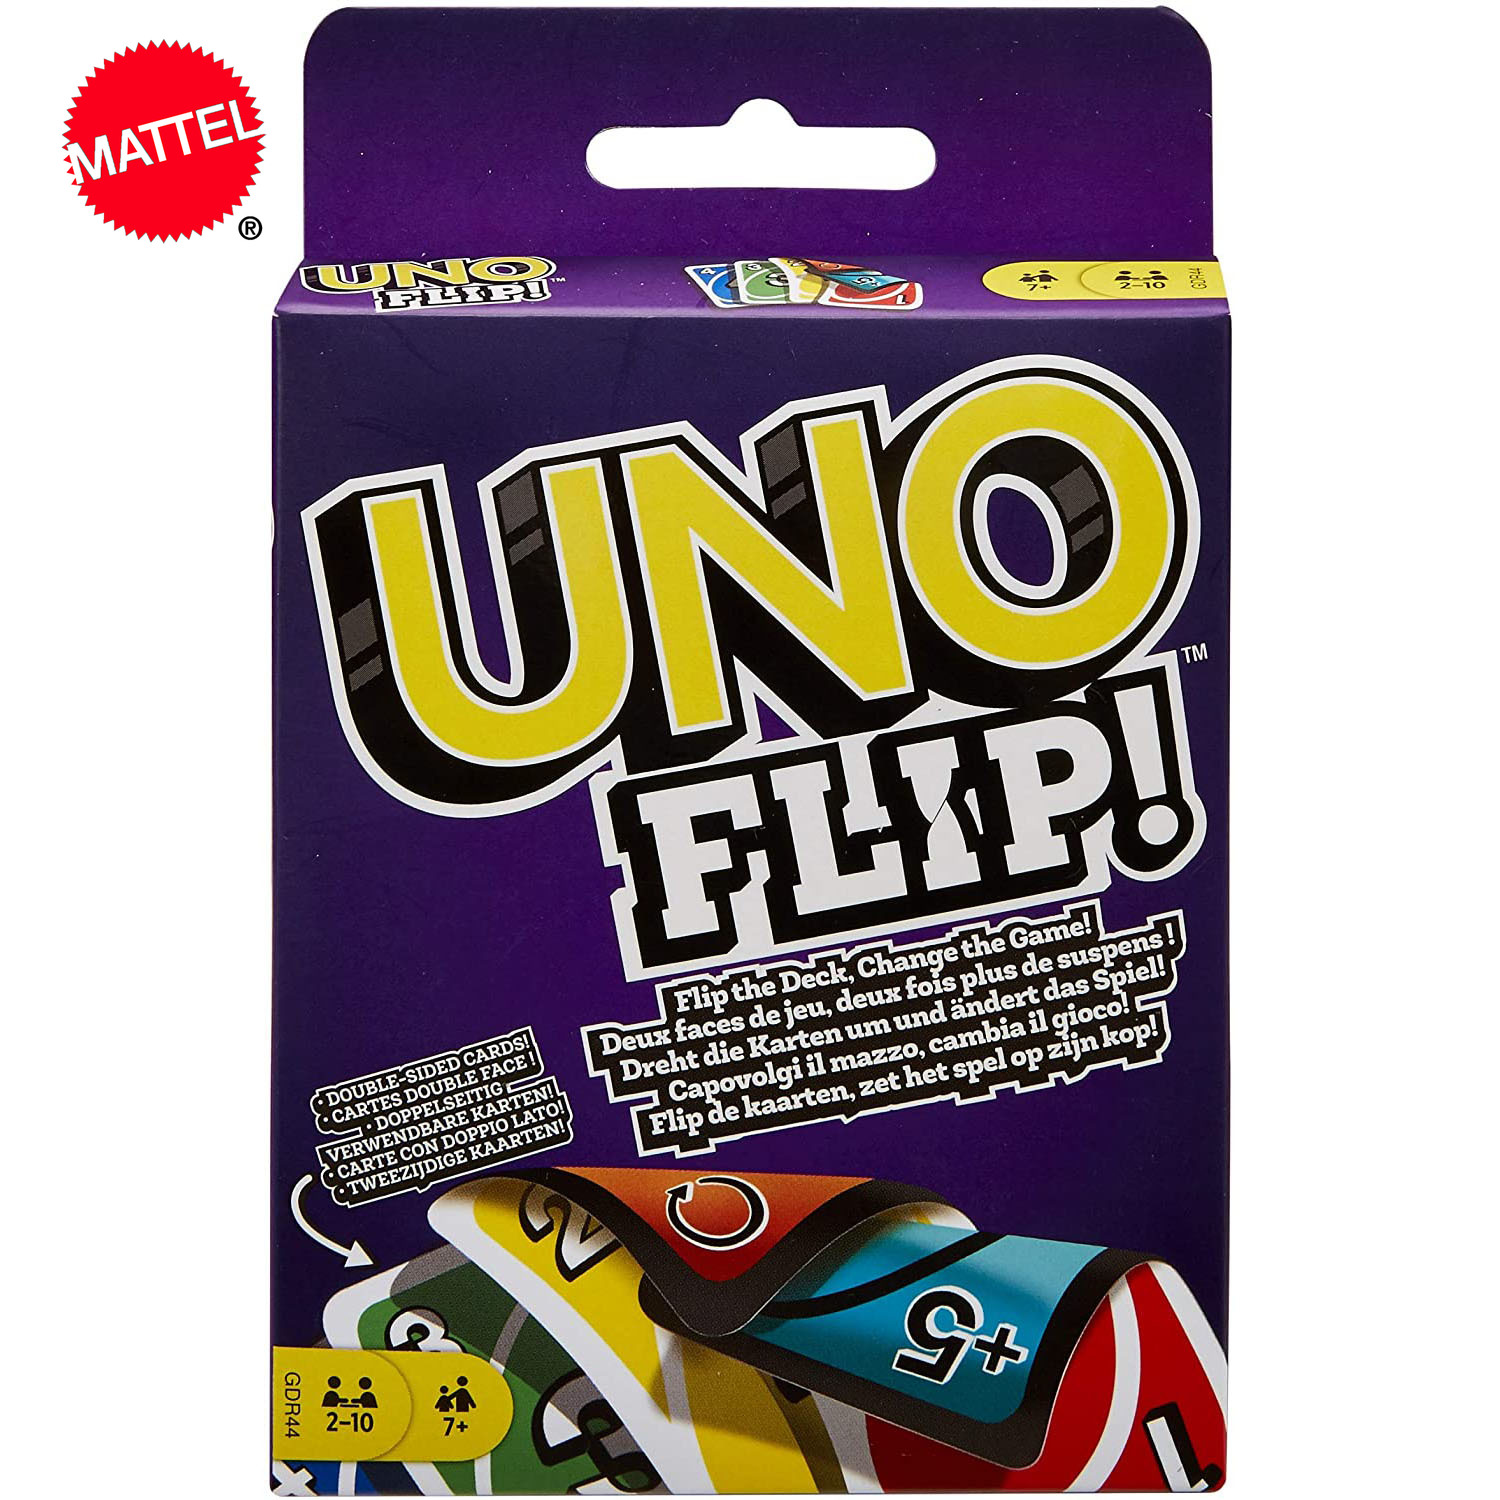 Mattel UNO : Flip ! Kartenspiel Fun Board Game High Fun Multiplayer Playing Toy Card Games